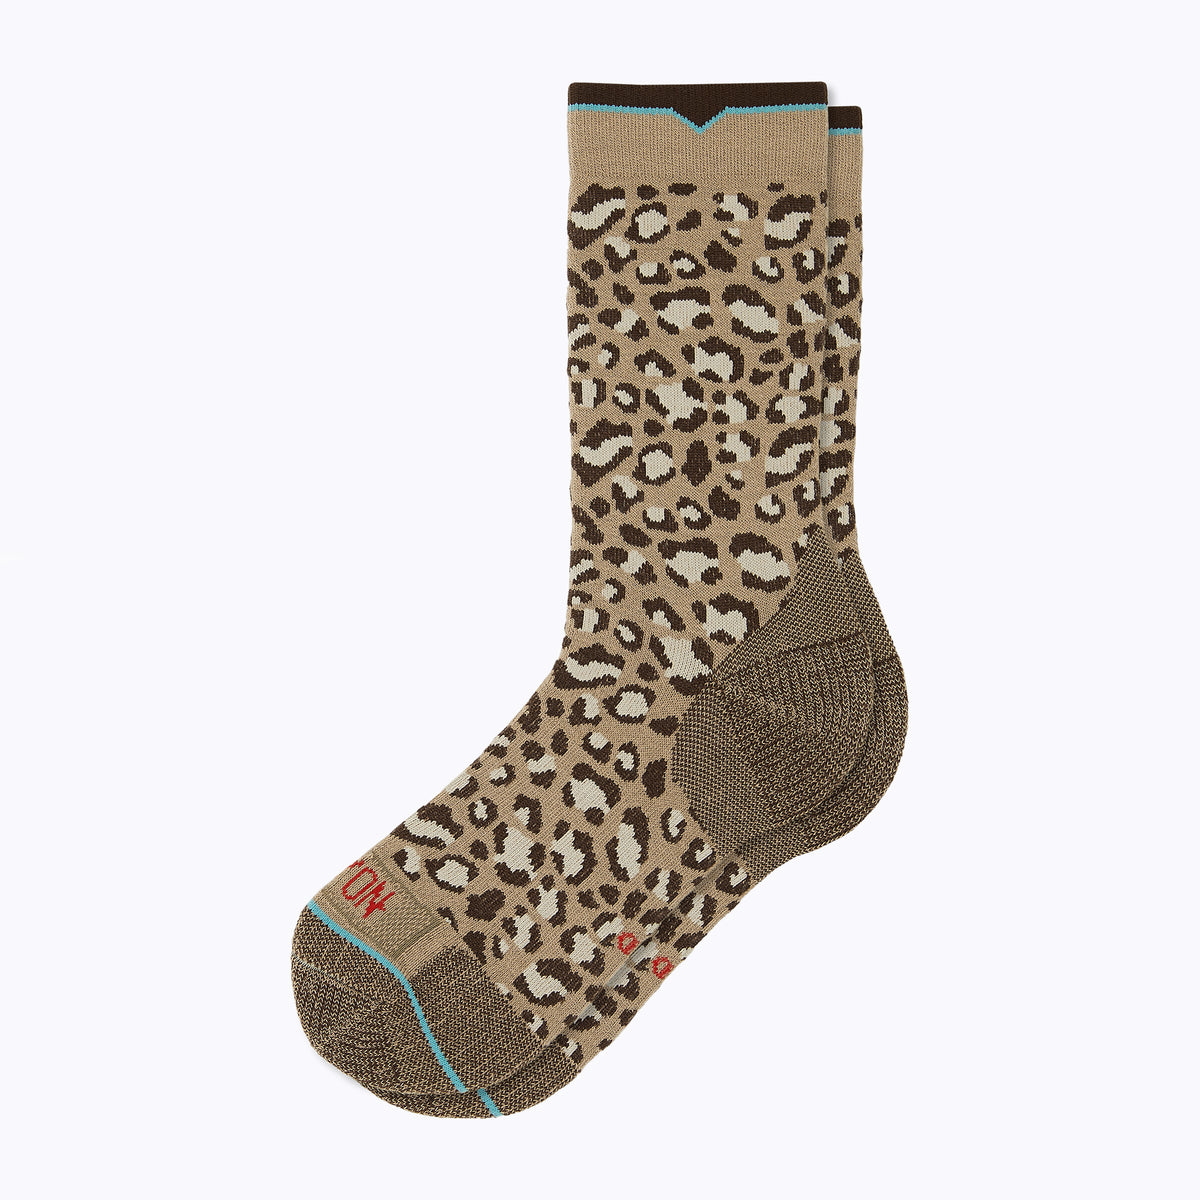 Leopard Women's Crew Socks - Sand by Canyon Socks